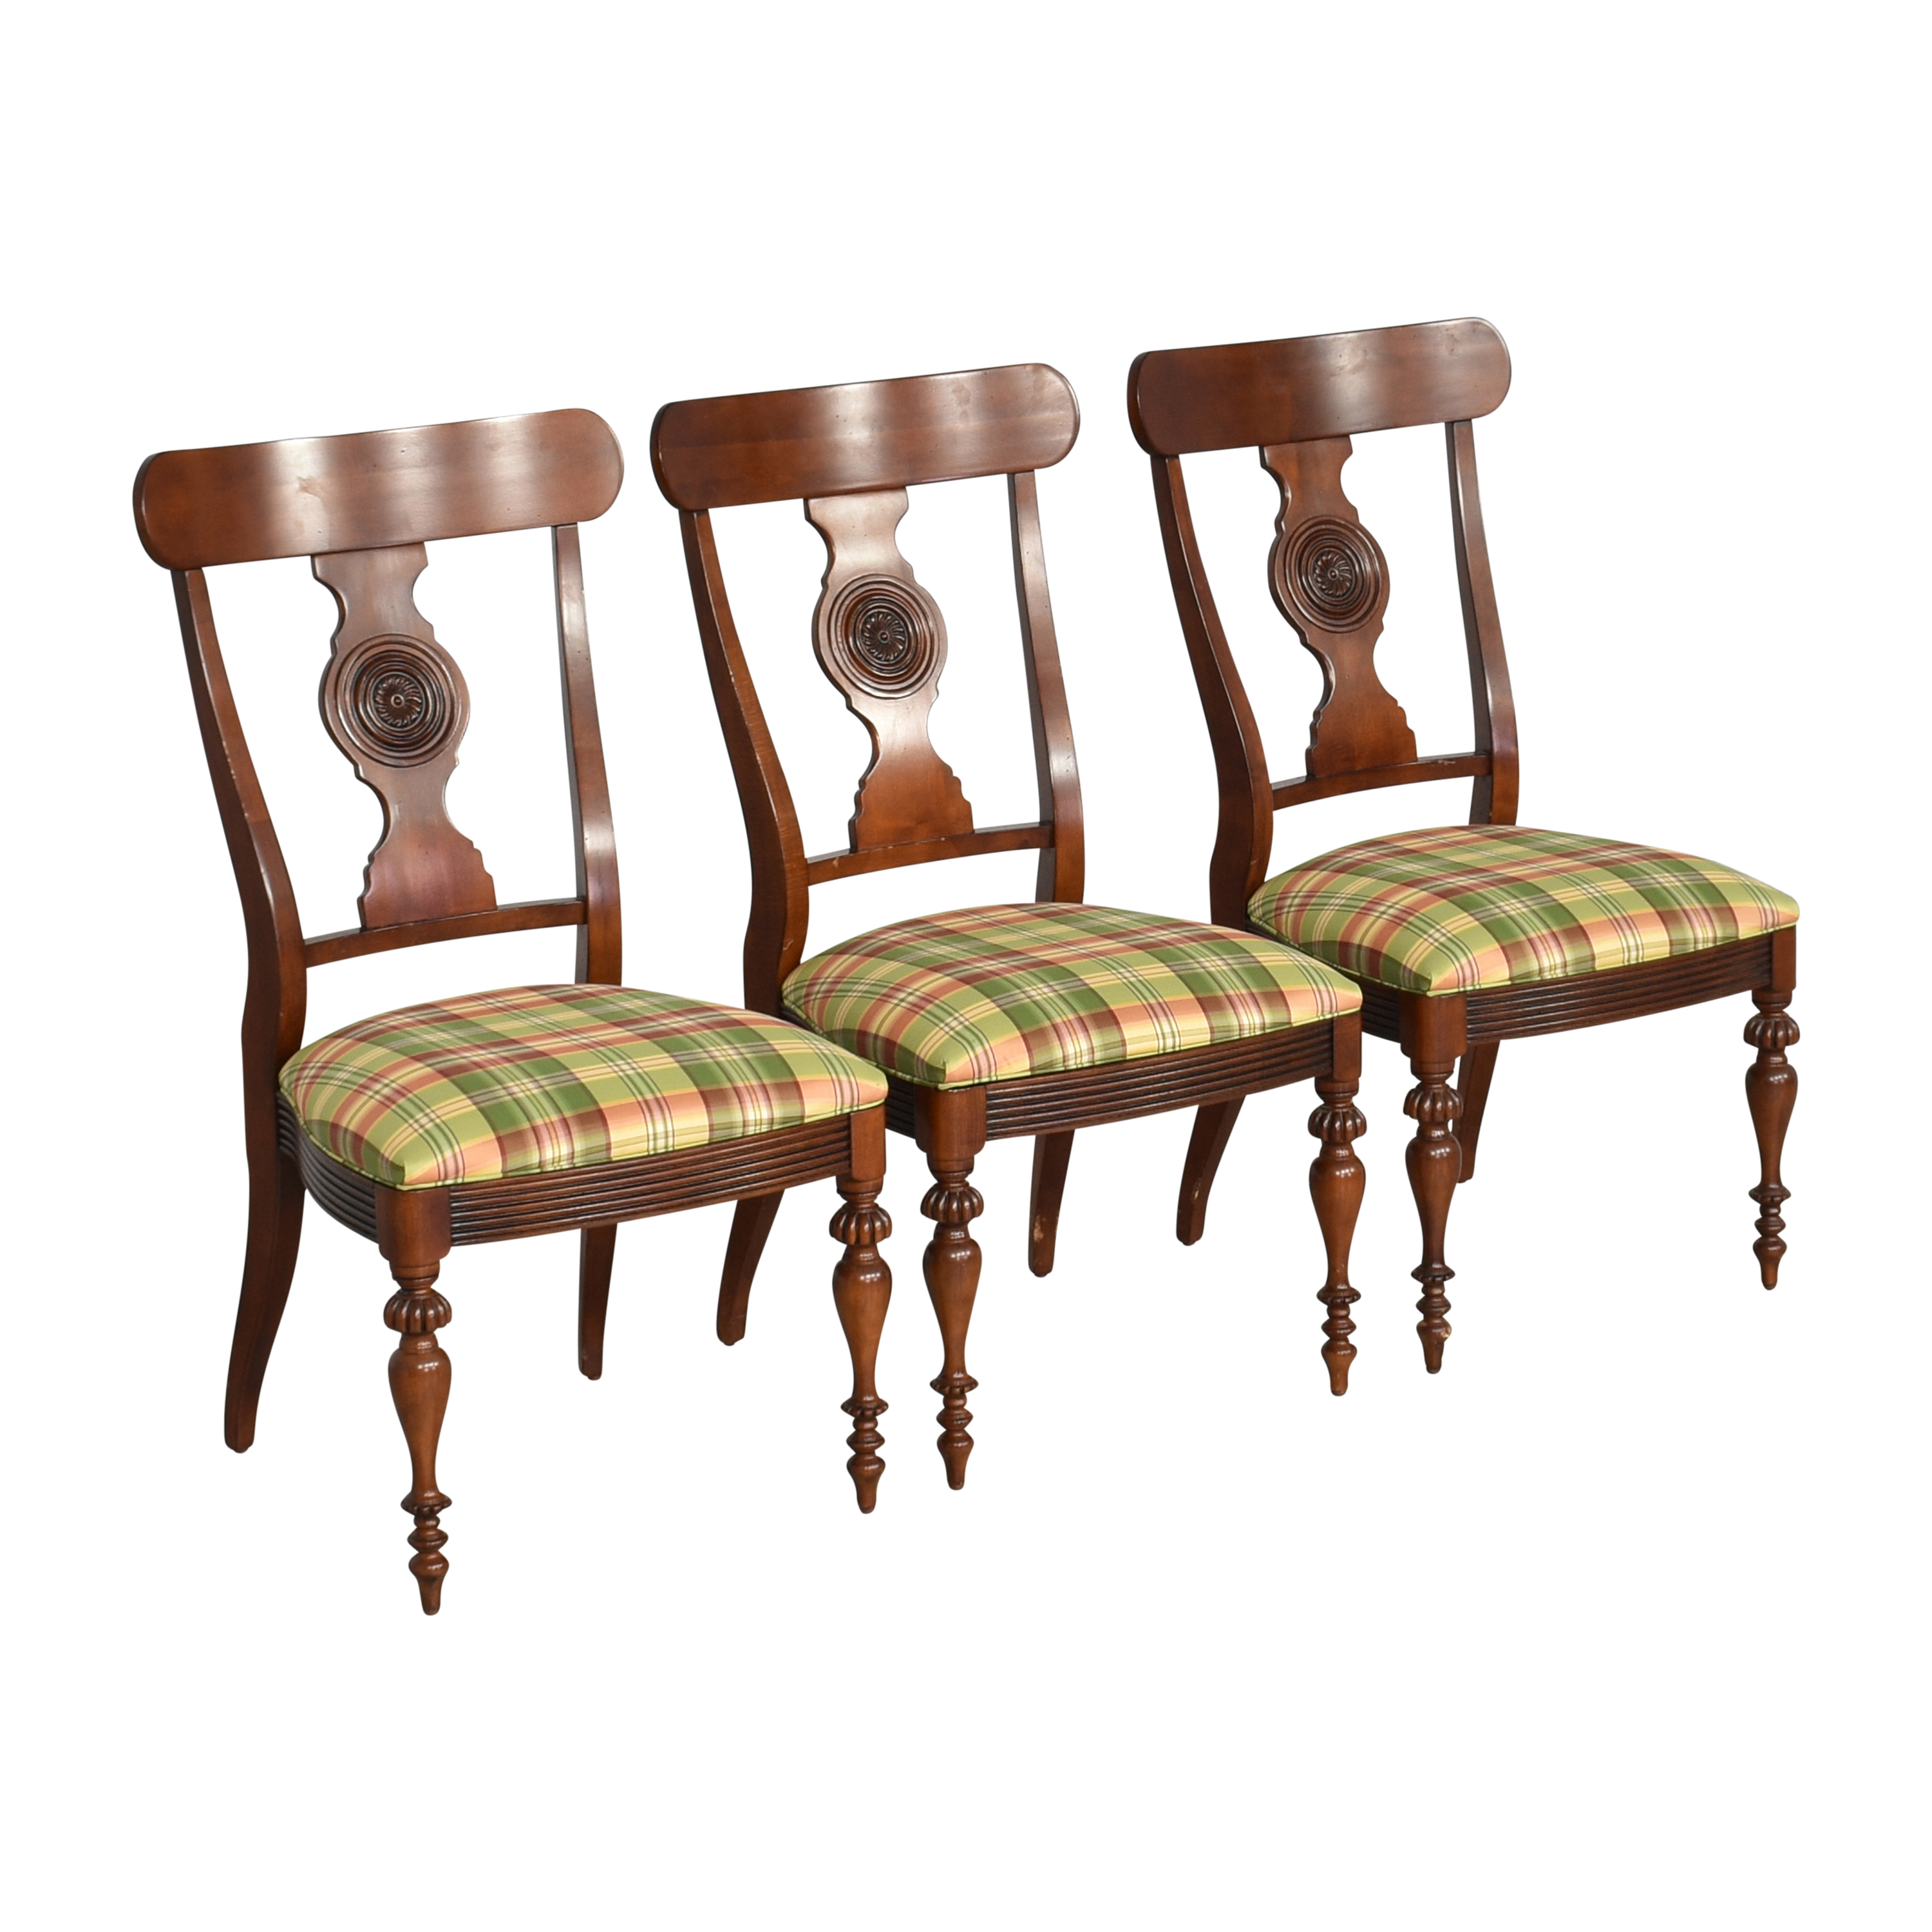 Ethan Allen Dining Chairs / Dining Chairs